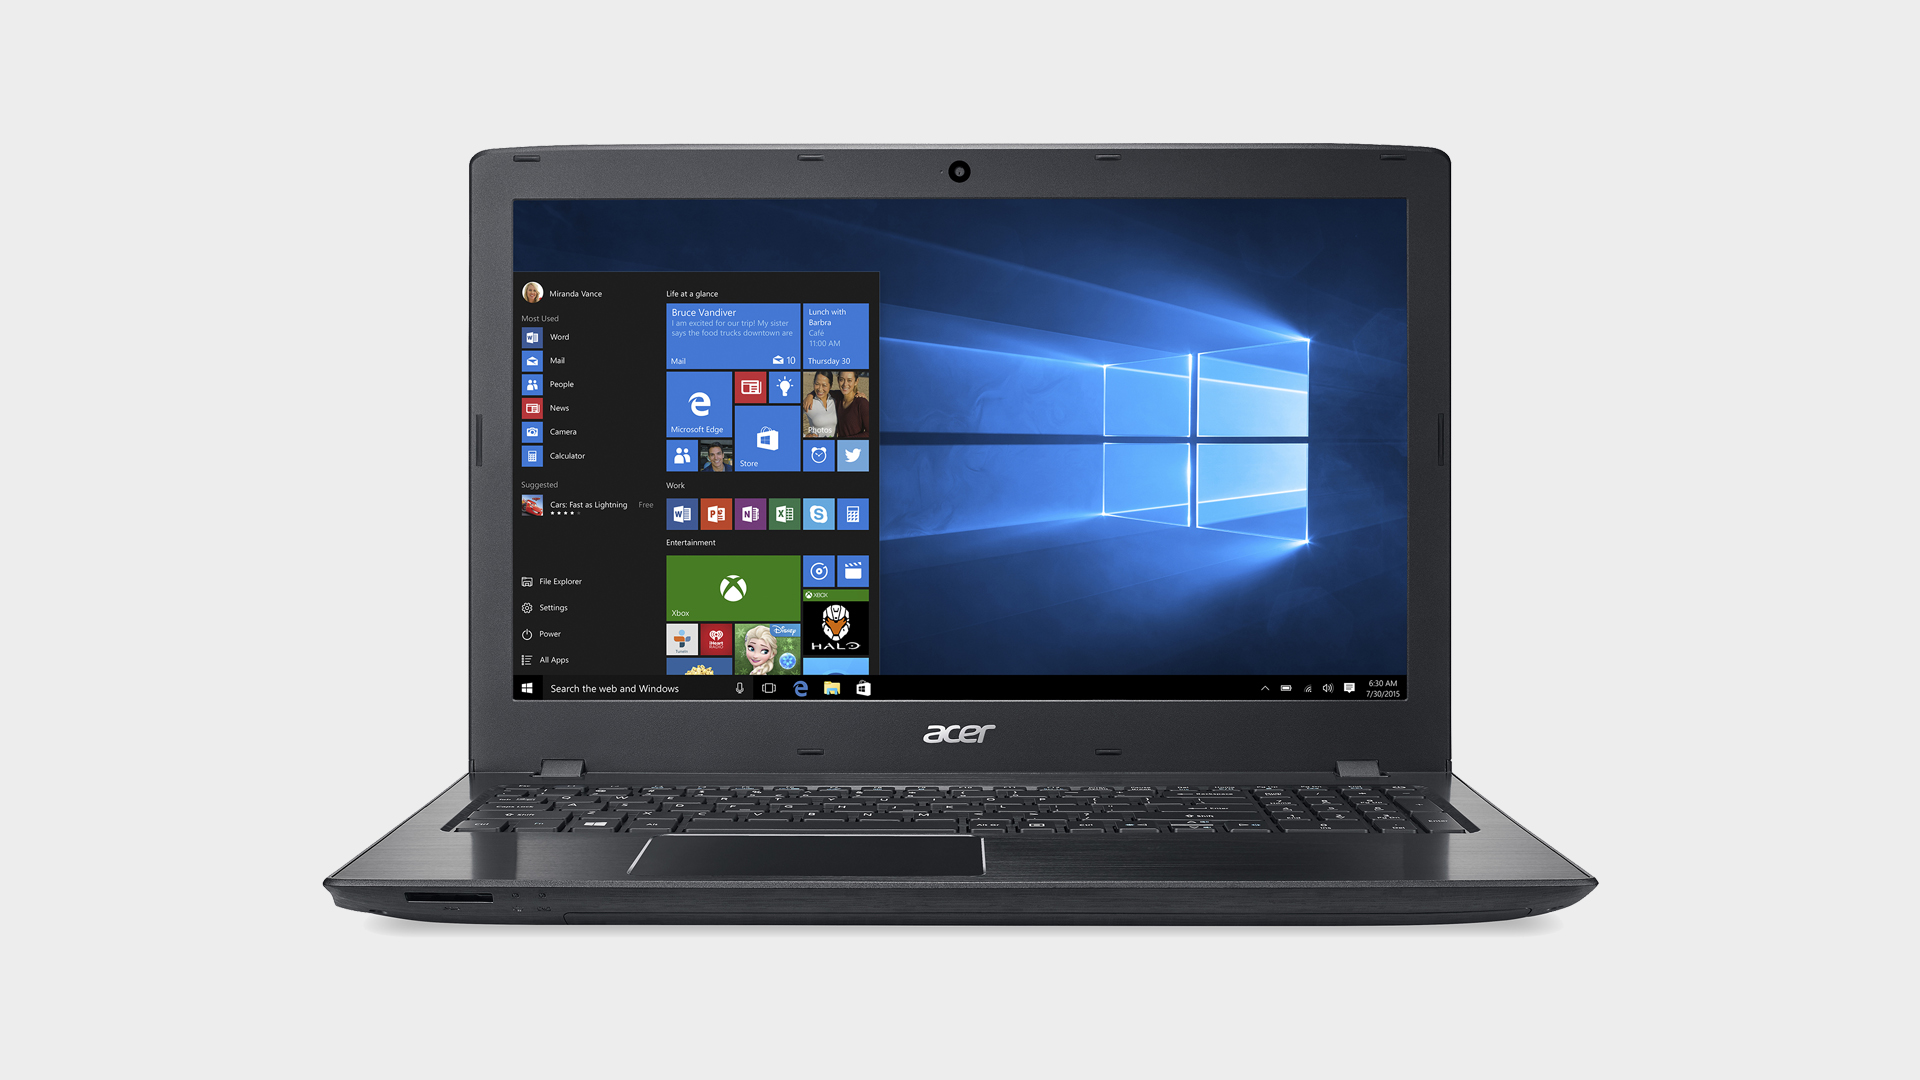 ACER ASPIRE 7715Z VGA DRIVER DOWNLOAD (2019)